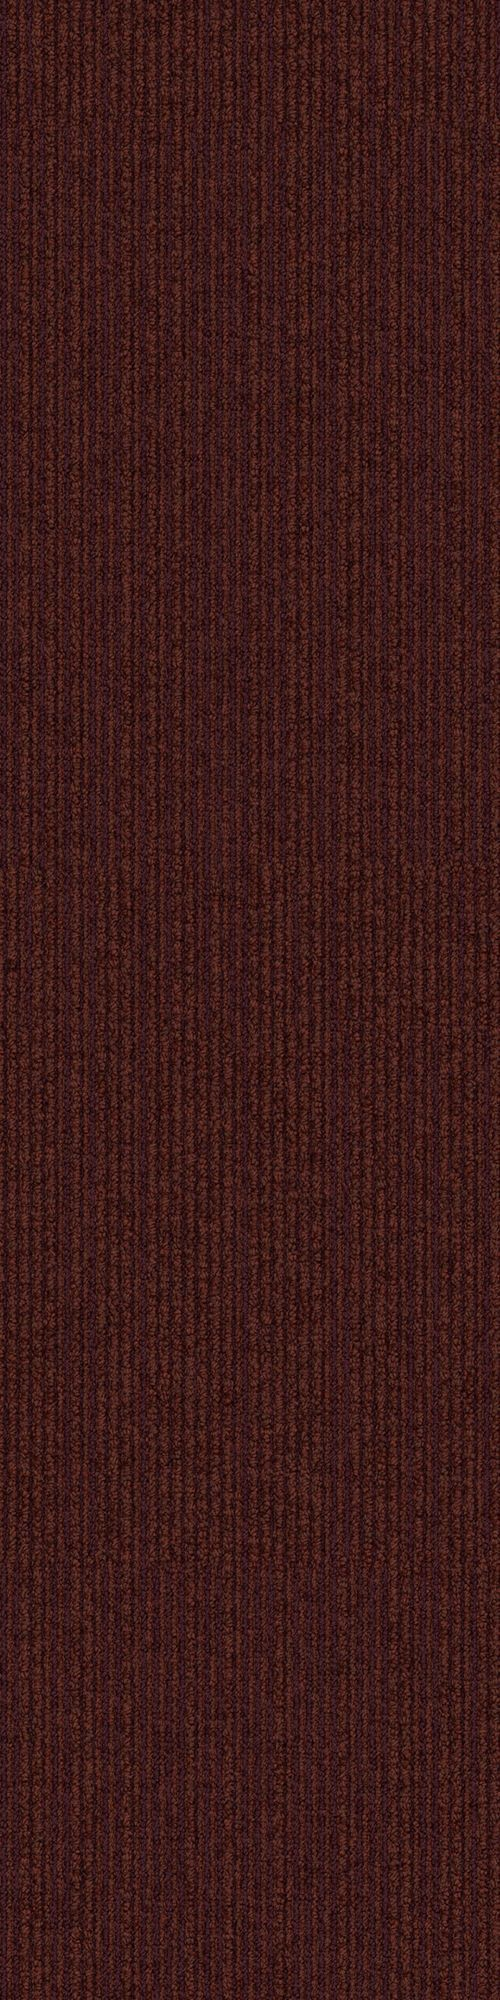 Interface carpet tile: On Line Color name: Rust